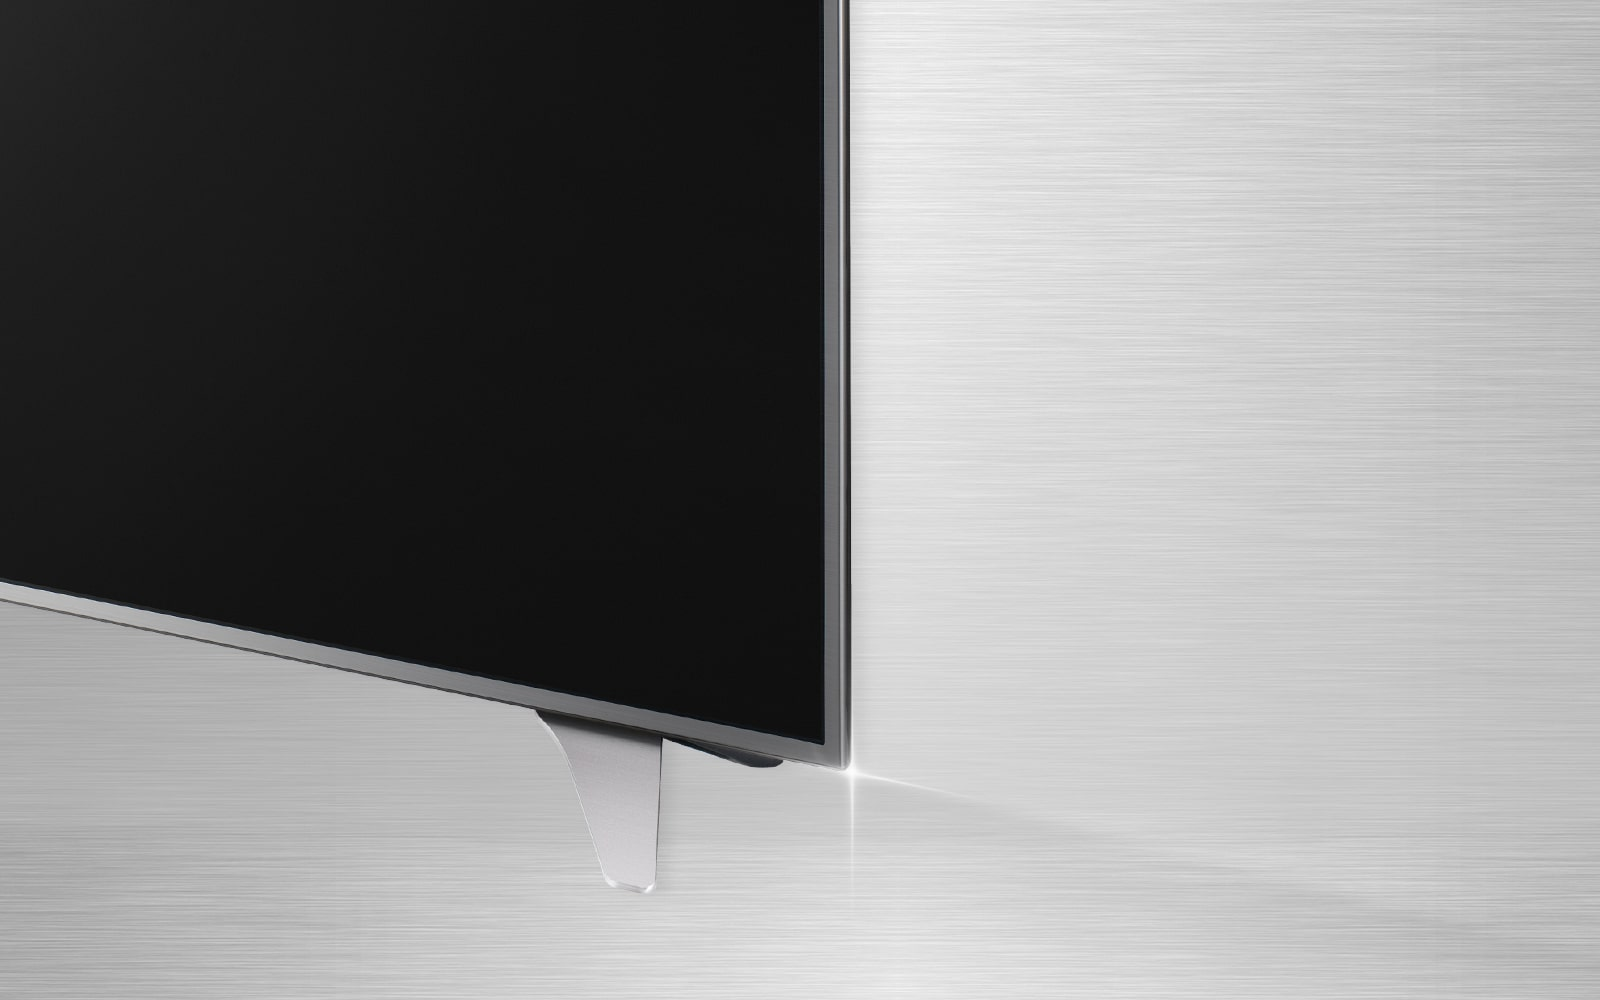 08_UHD_Feature_ULTRA Slim